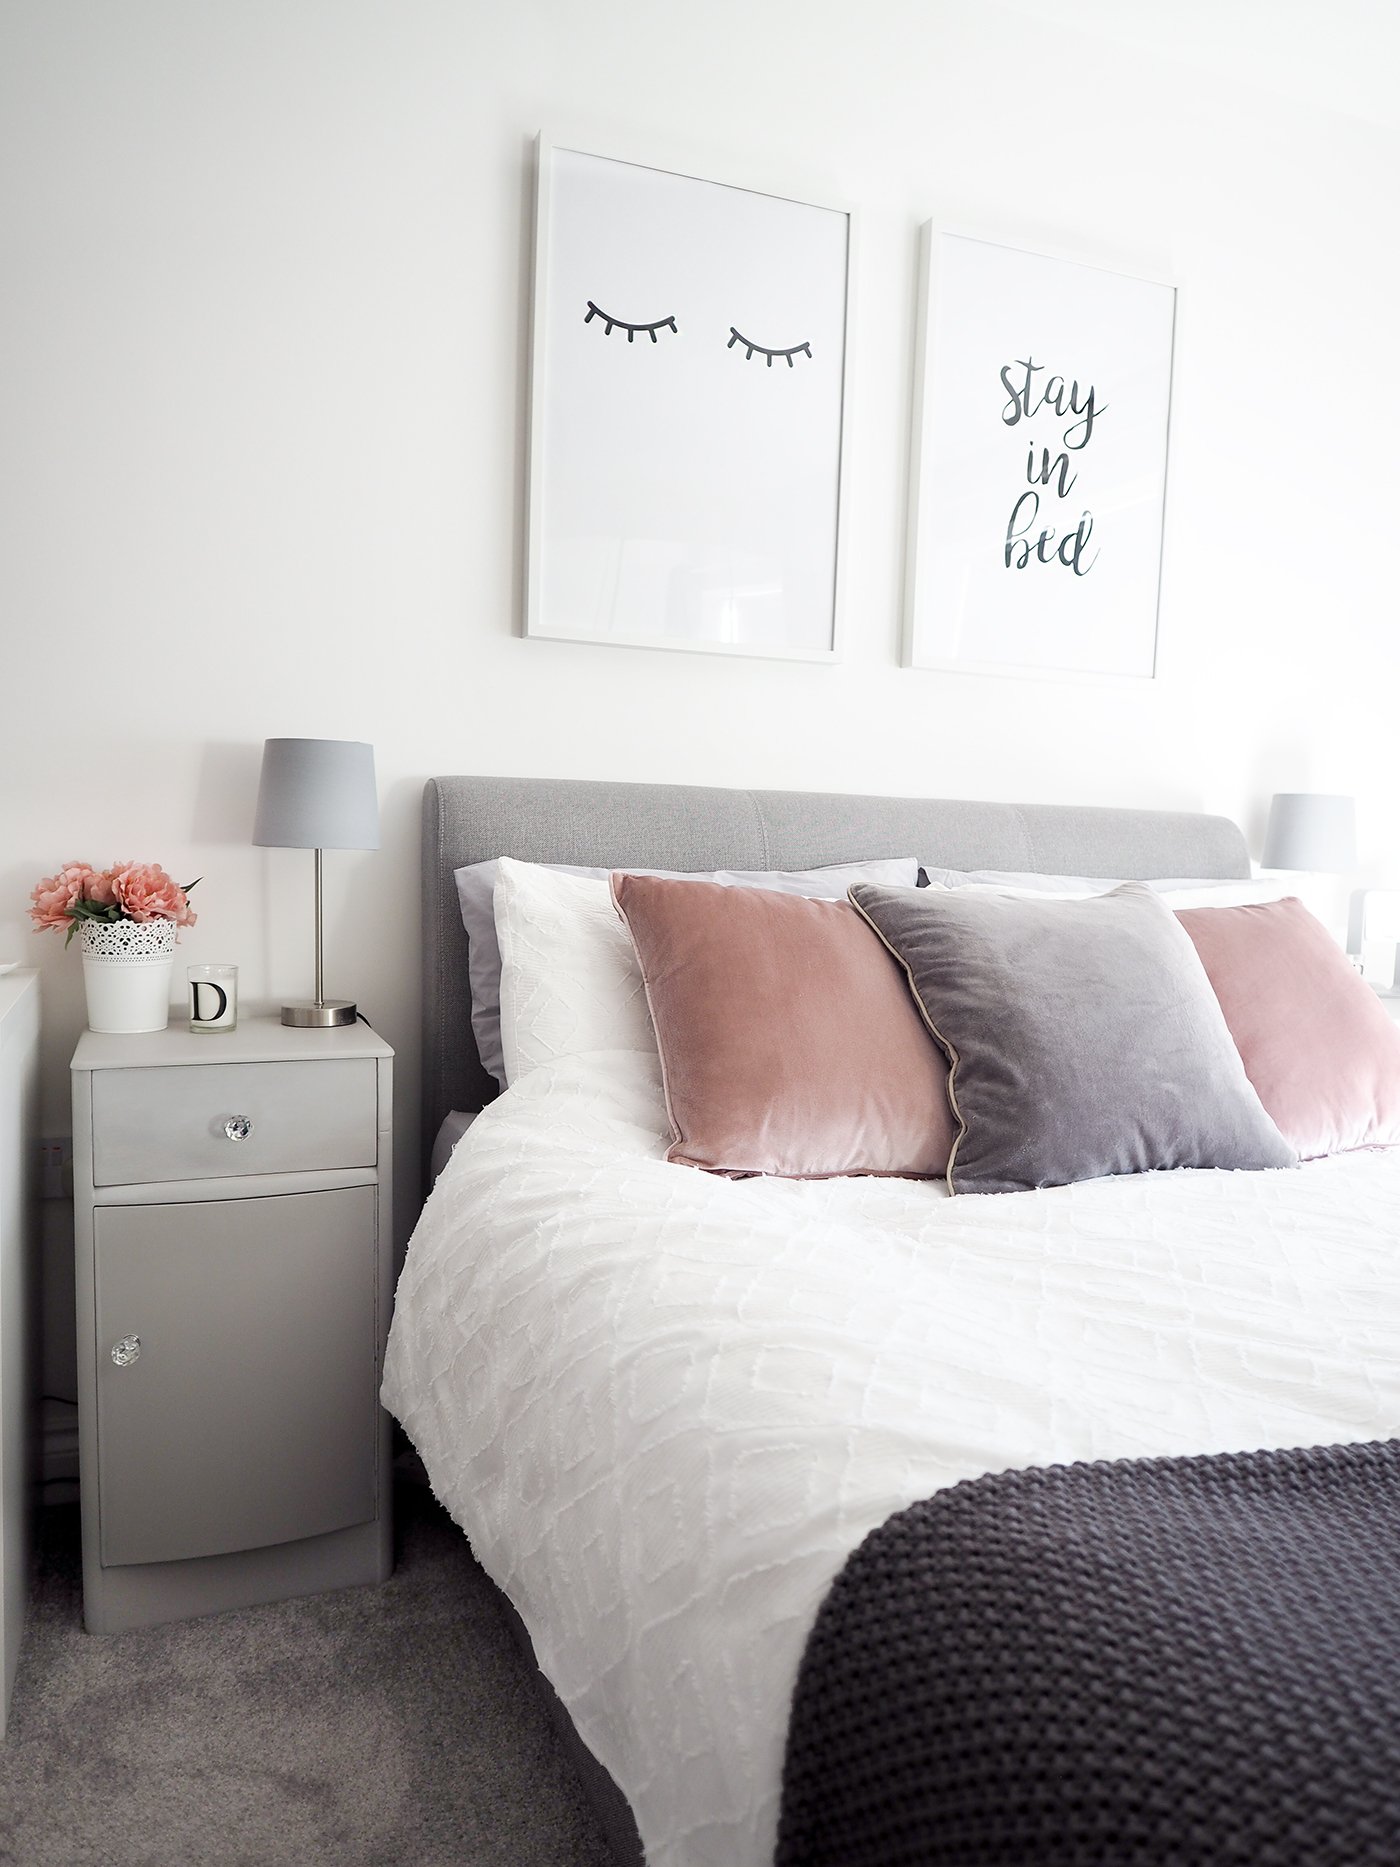 Grey Bedroom Decor Bedroom Tour | Pink and Grey Bedroom Decor